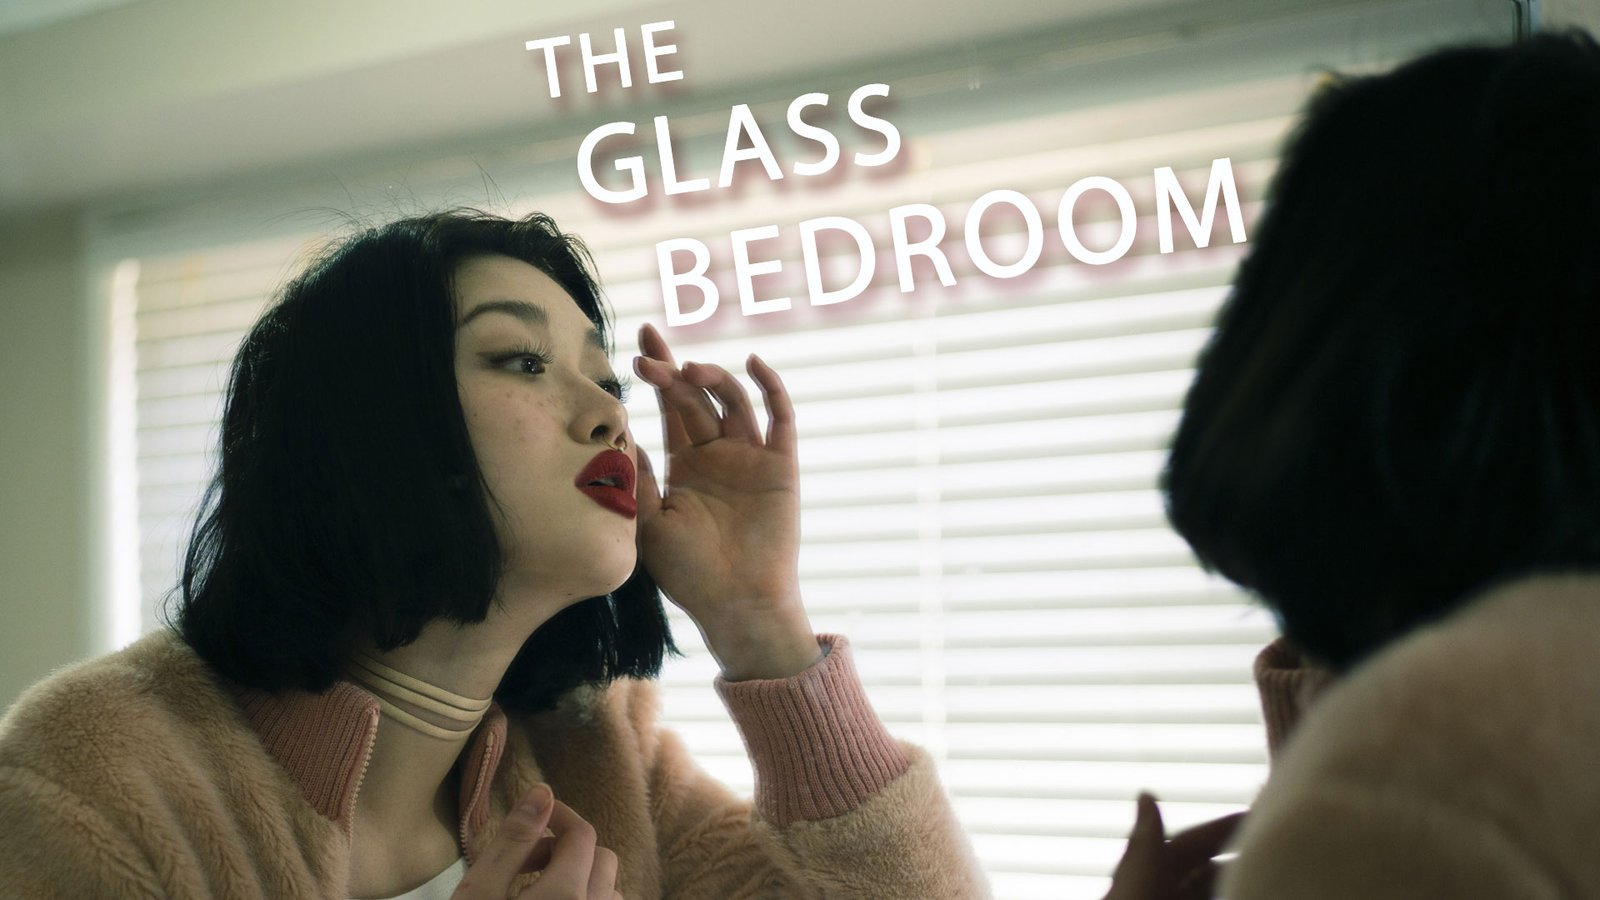 The Glass Bedroom